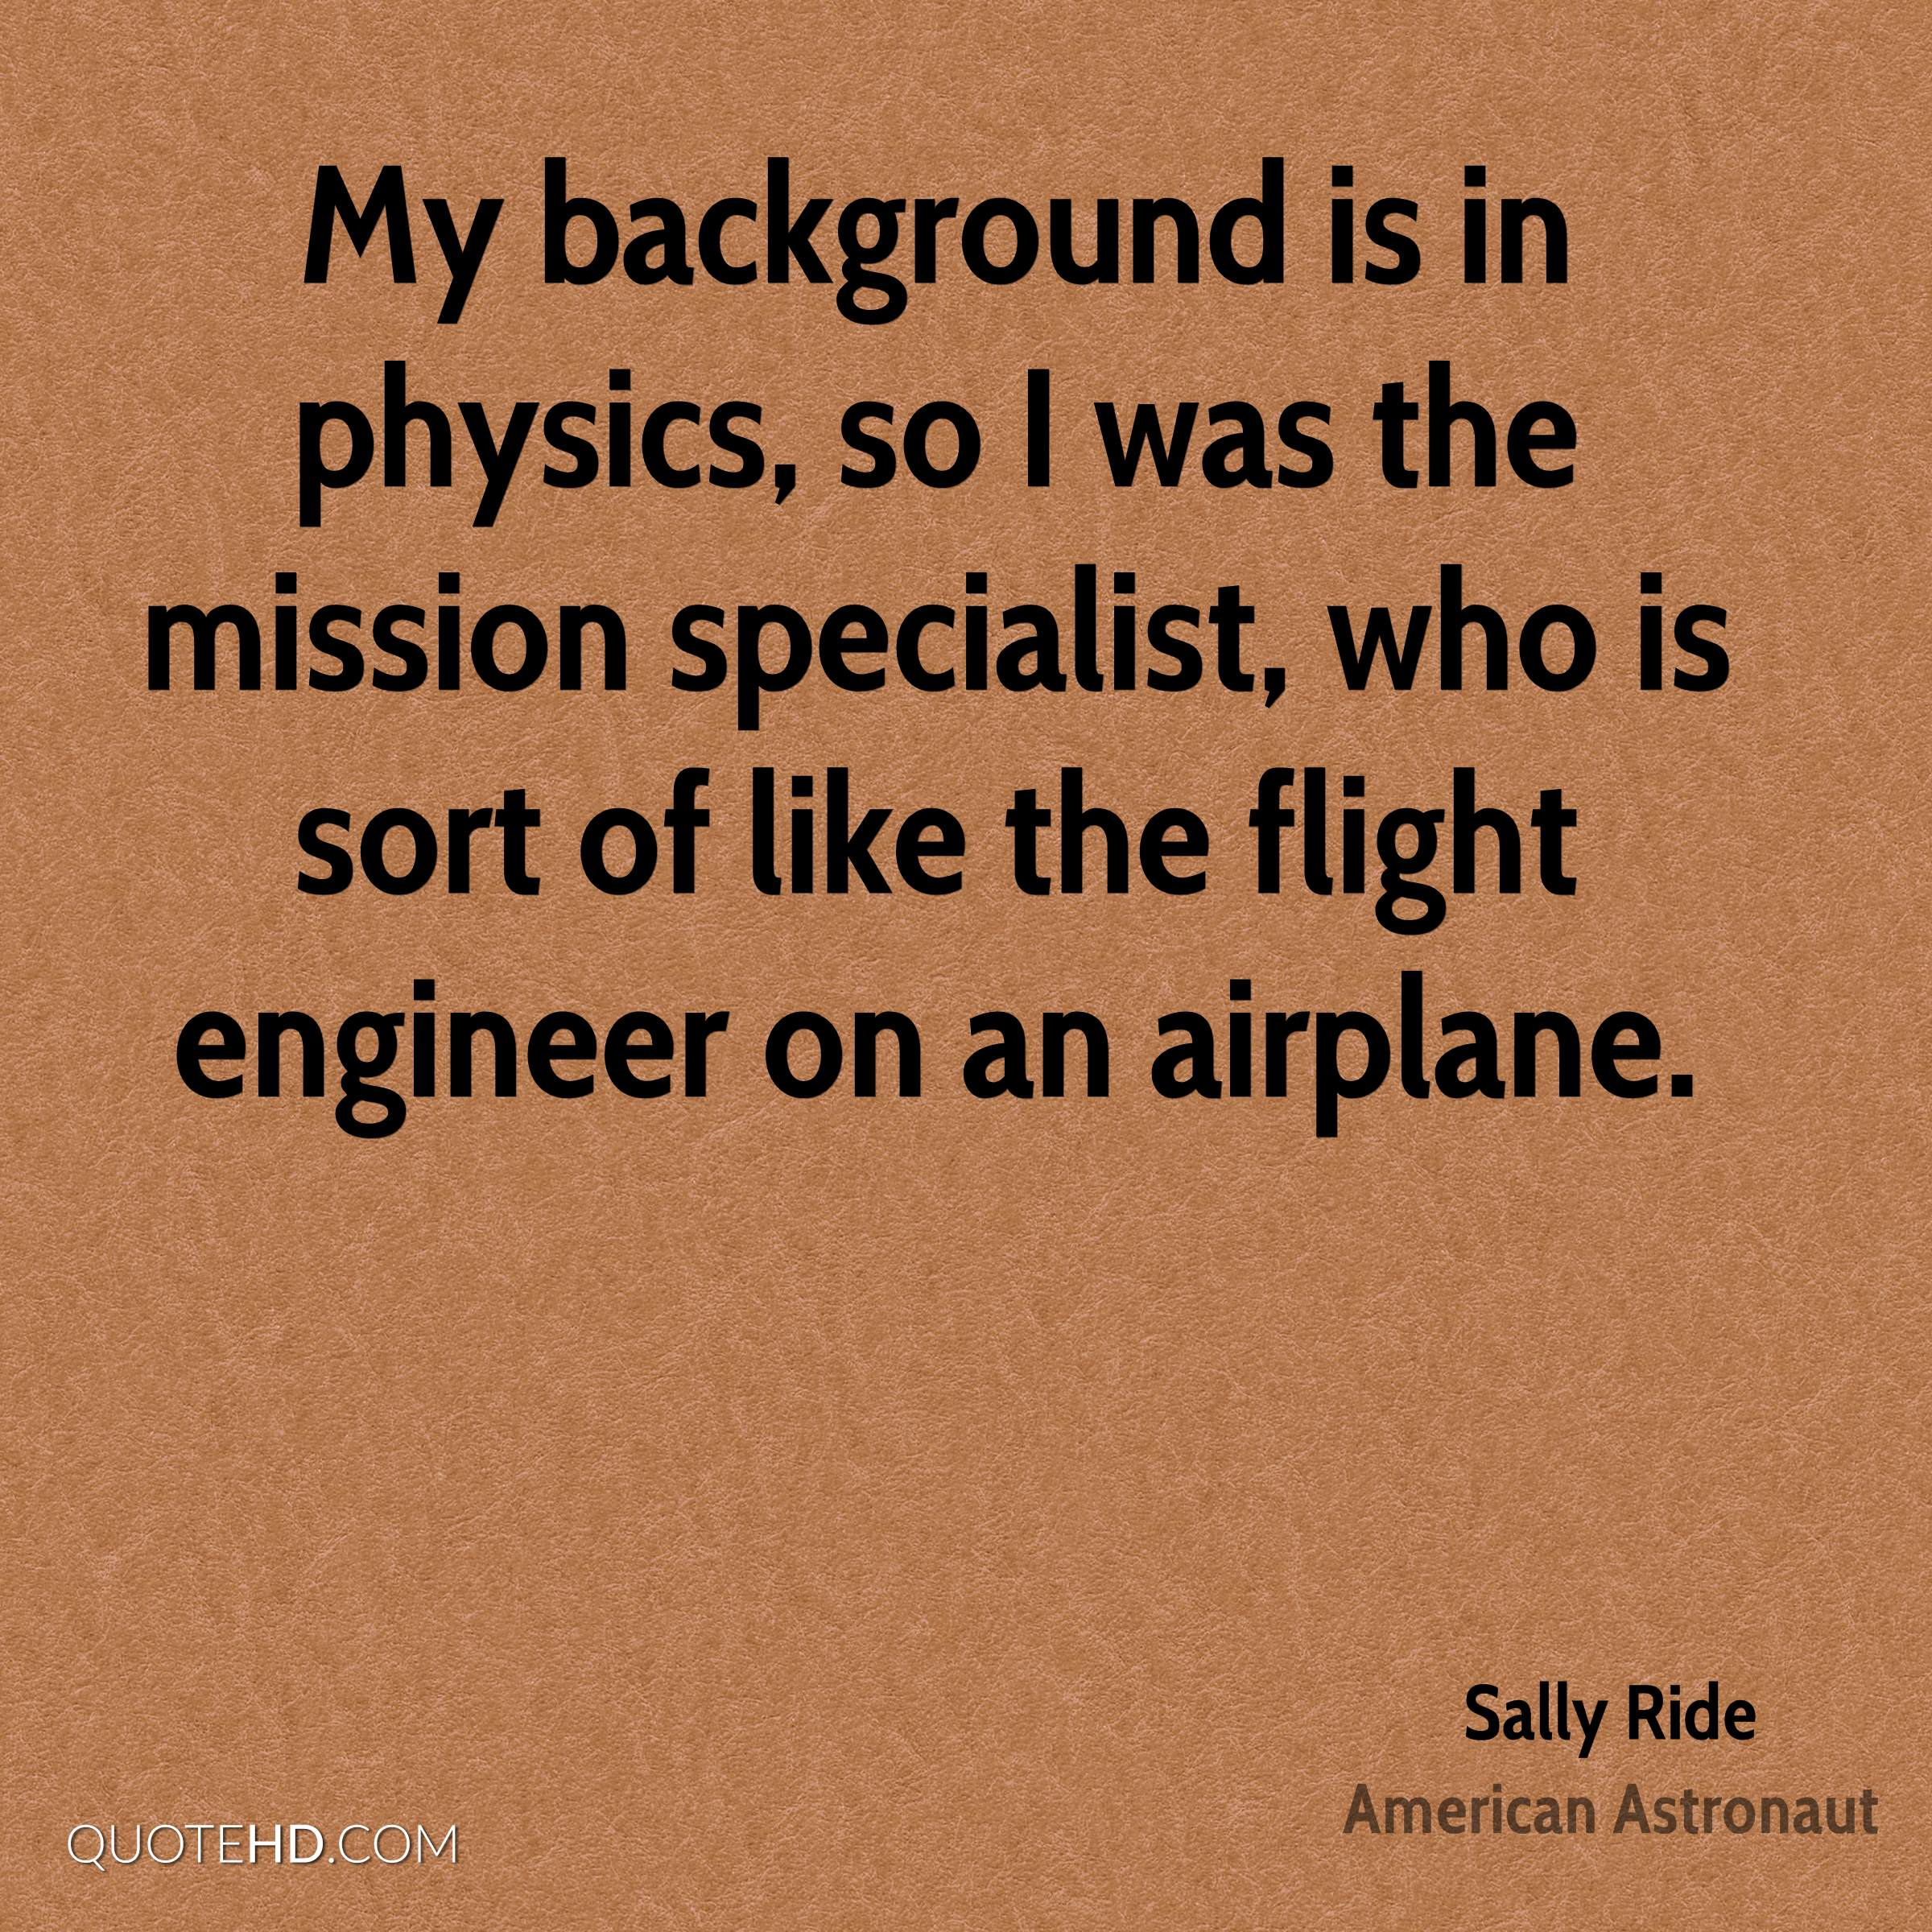 My background is in physics, so I was the mission specialist, who is sort of like the flight engineer on an airplane.